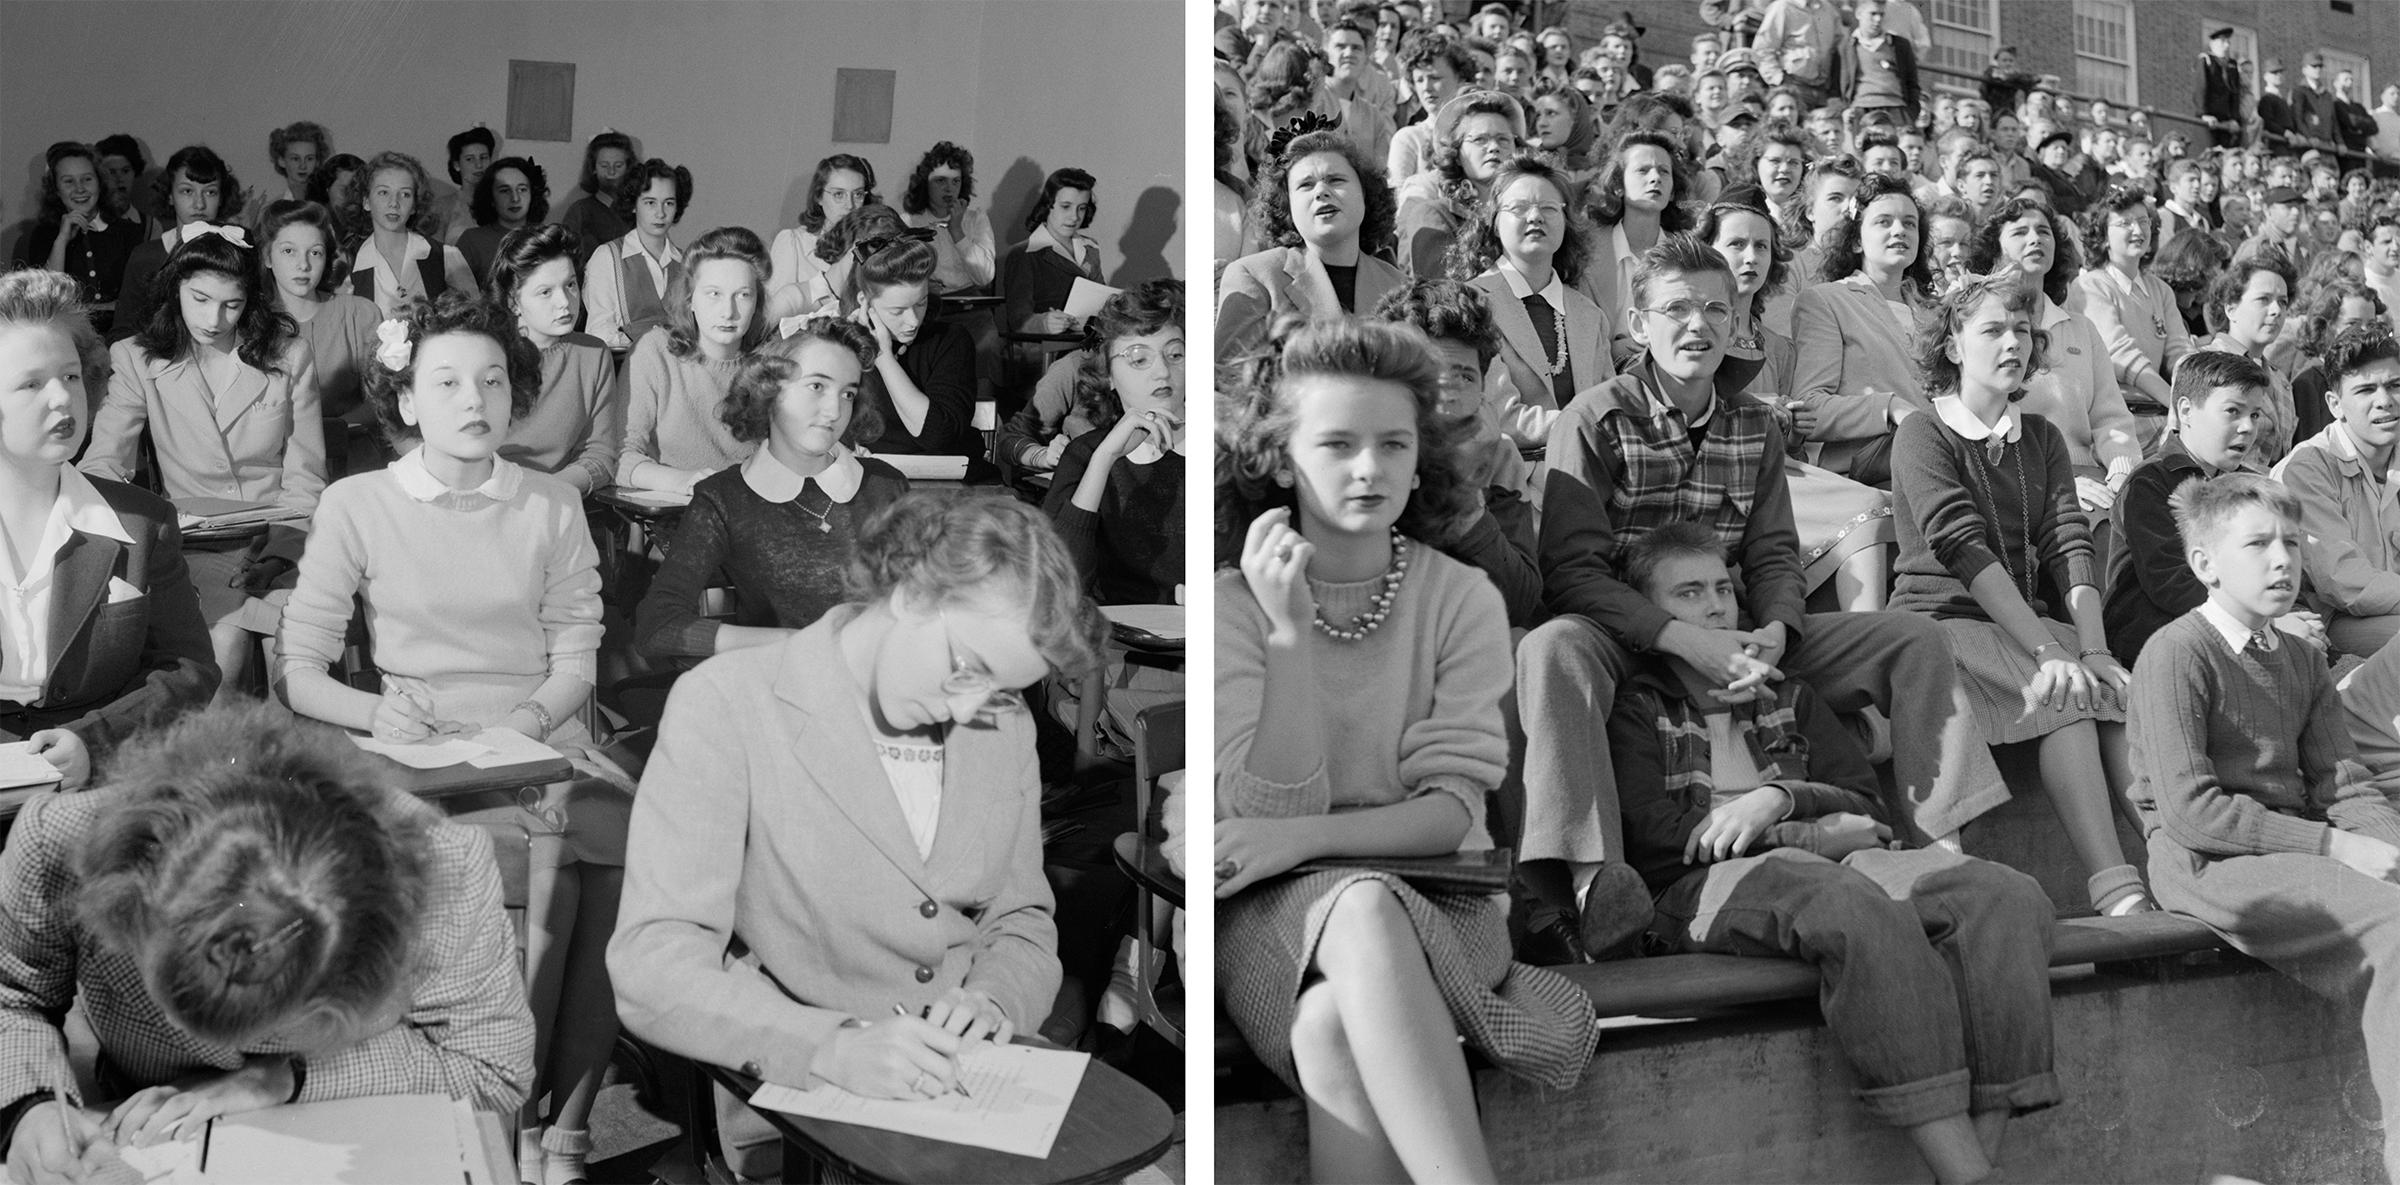 Wilson students in 1943